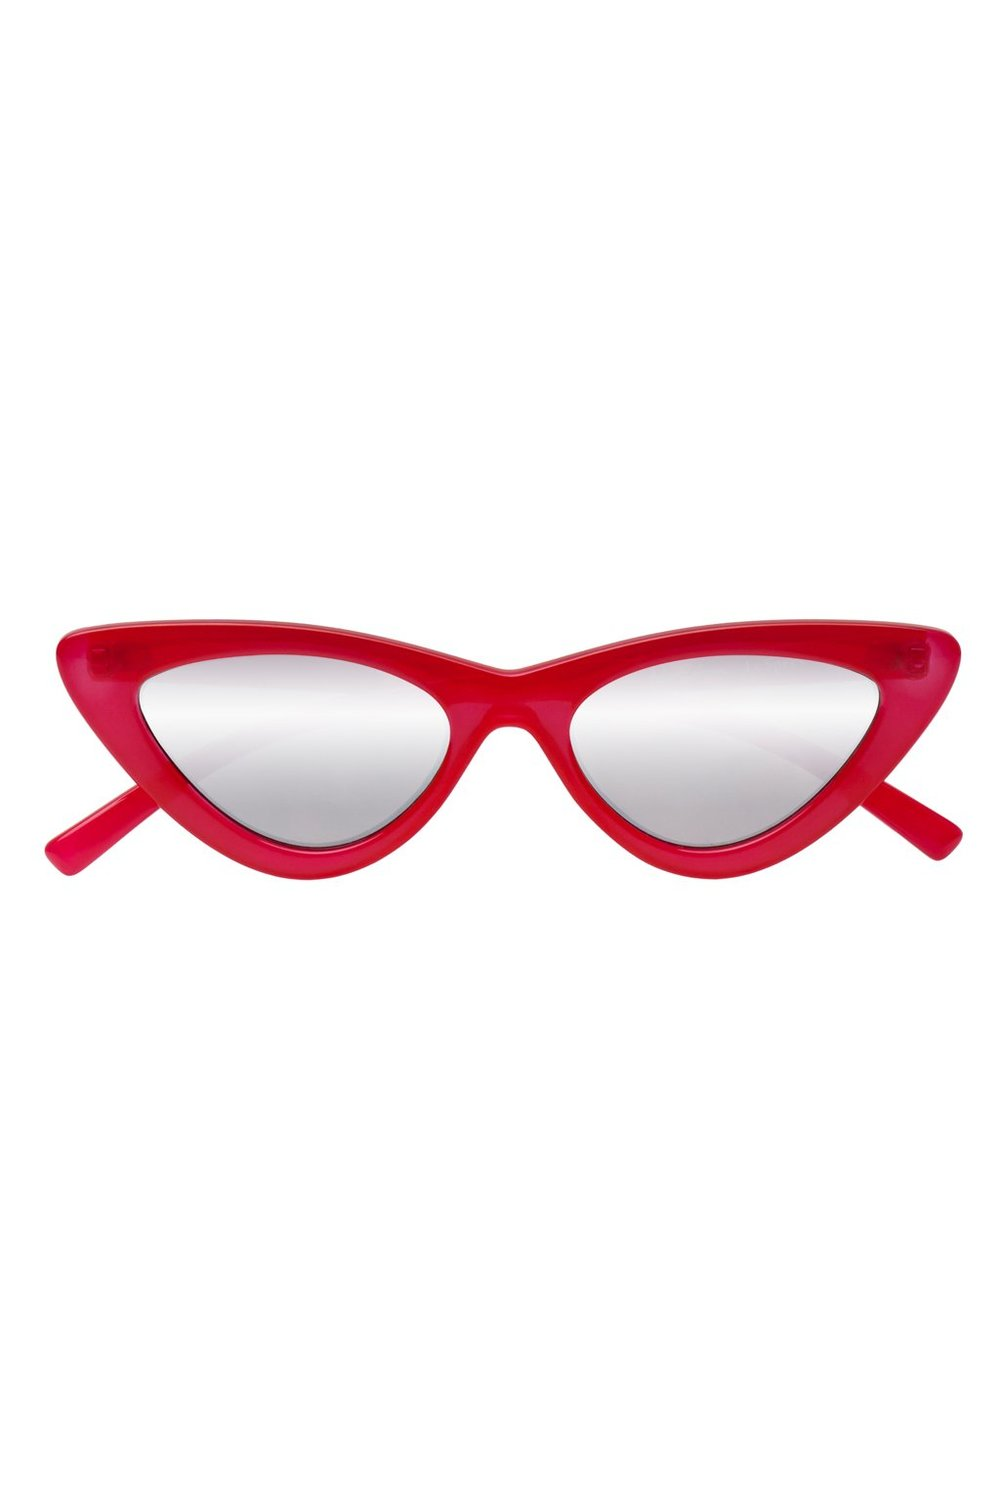 basics_department_adam_selman_le_specs_last_lolita_opaque_red1.jpg